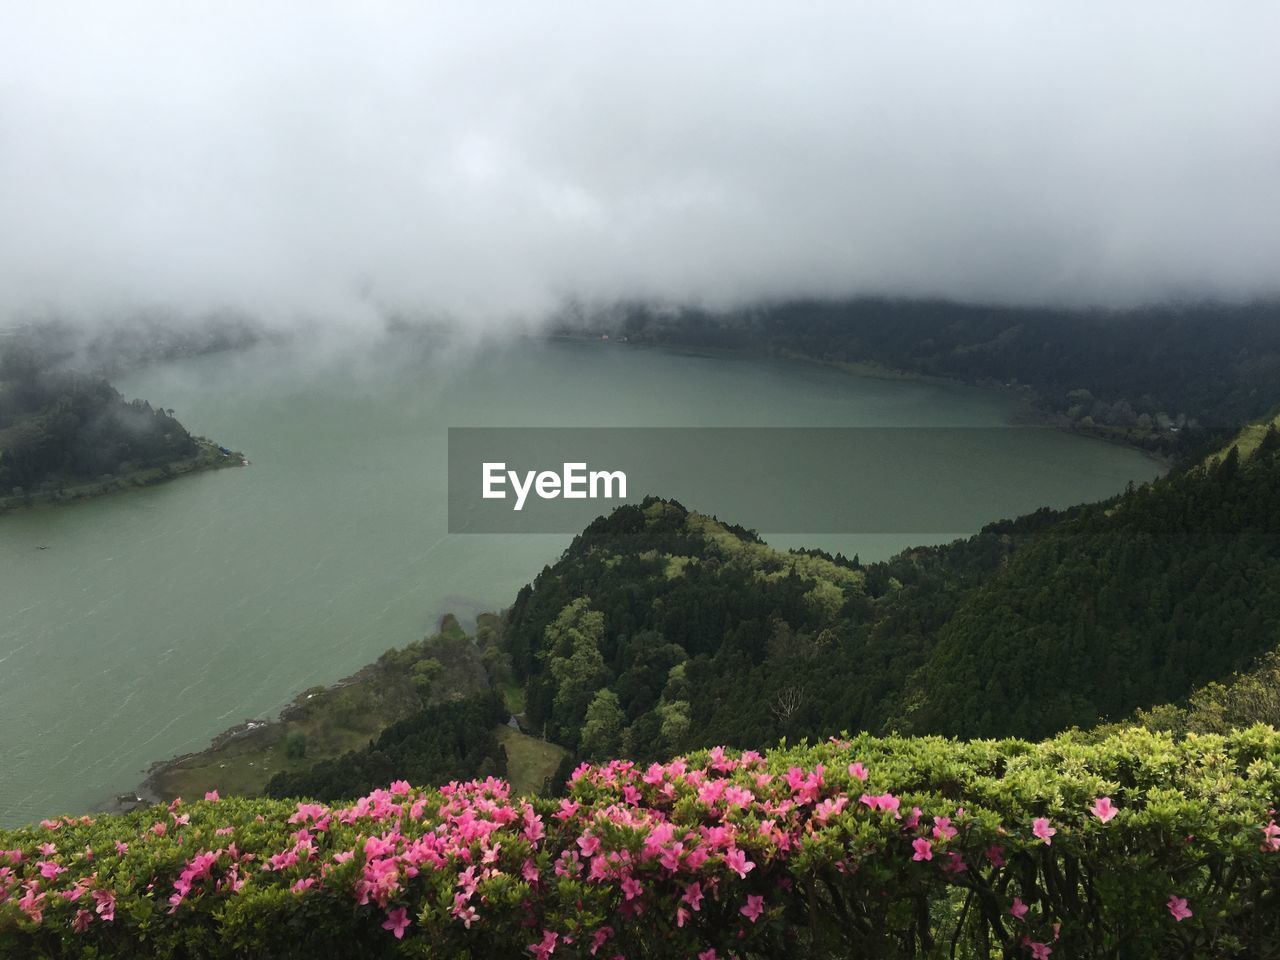 beauty in nature, nature, flower, tranquility, lake, scenics, tranquil scene, day, foggy, fog, outdoors, no people, landscape, growth, mountain, plant, water, sky, fragility, tree, freshness